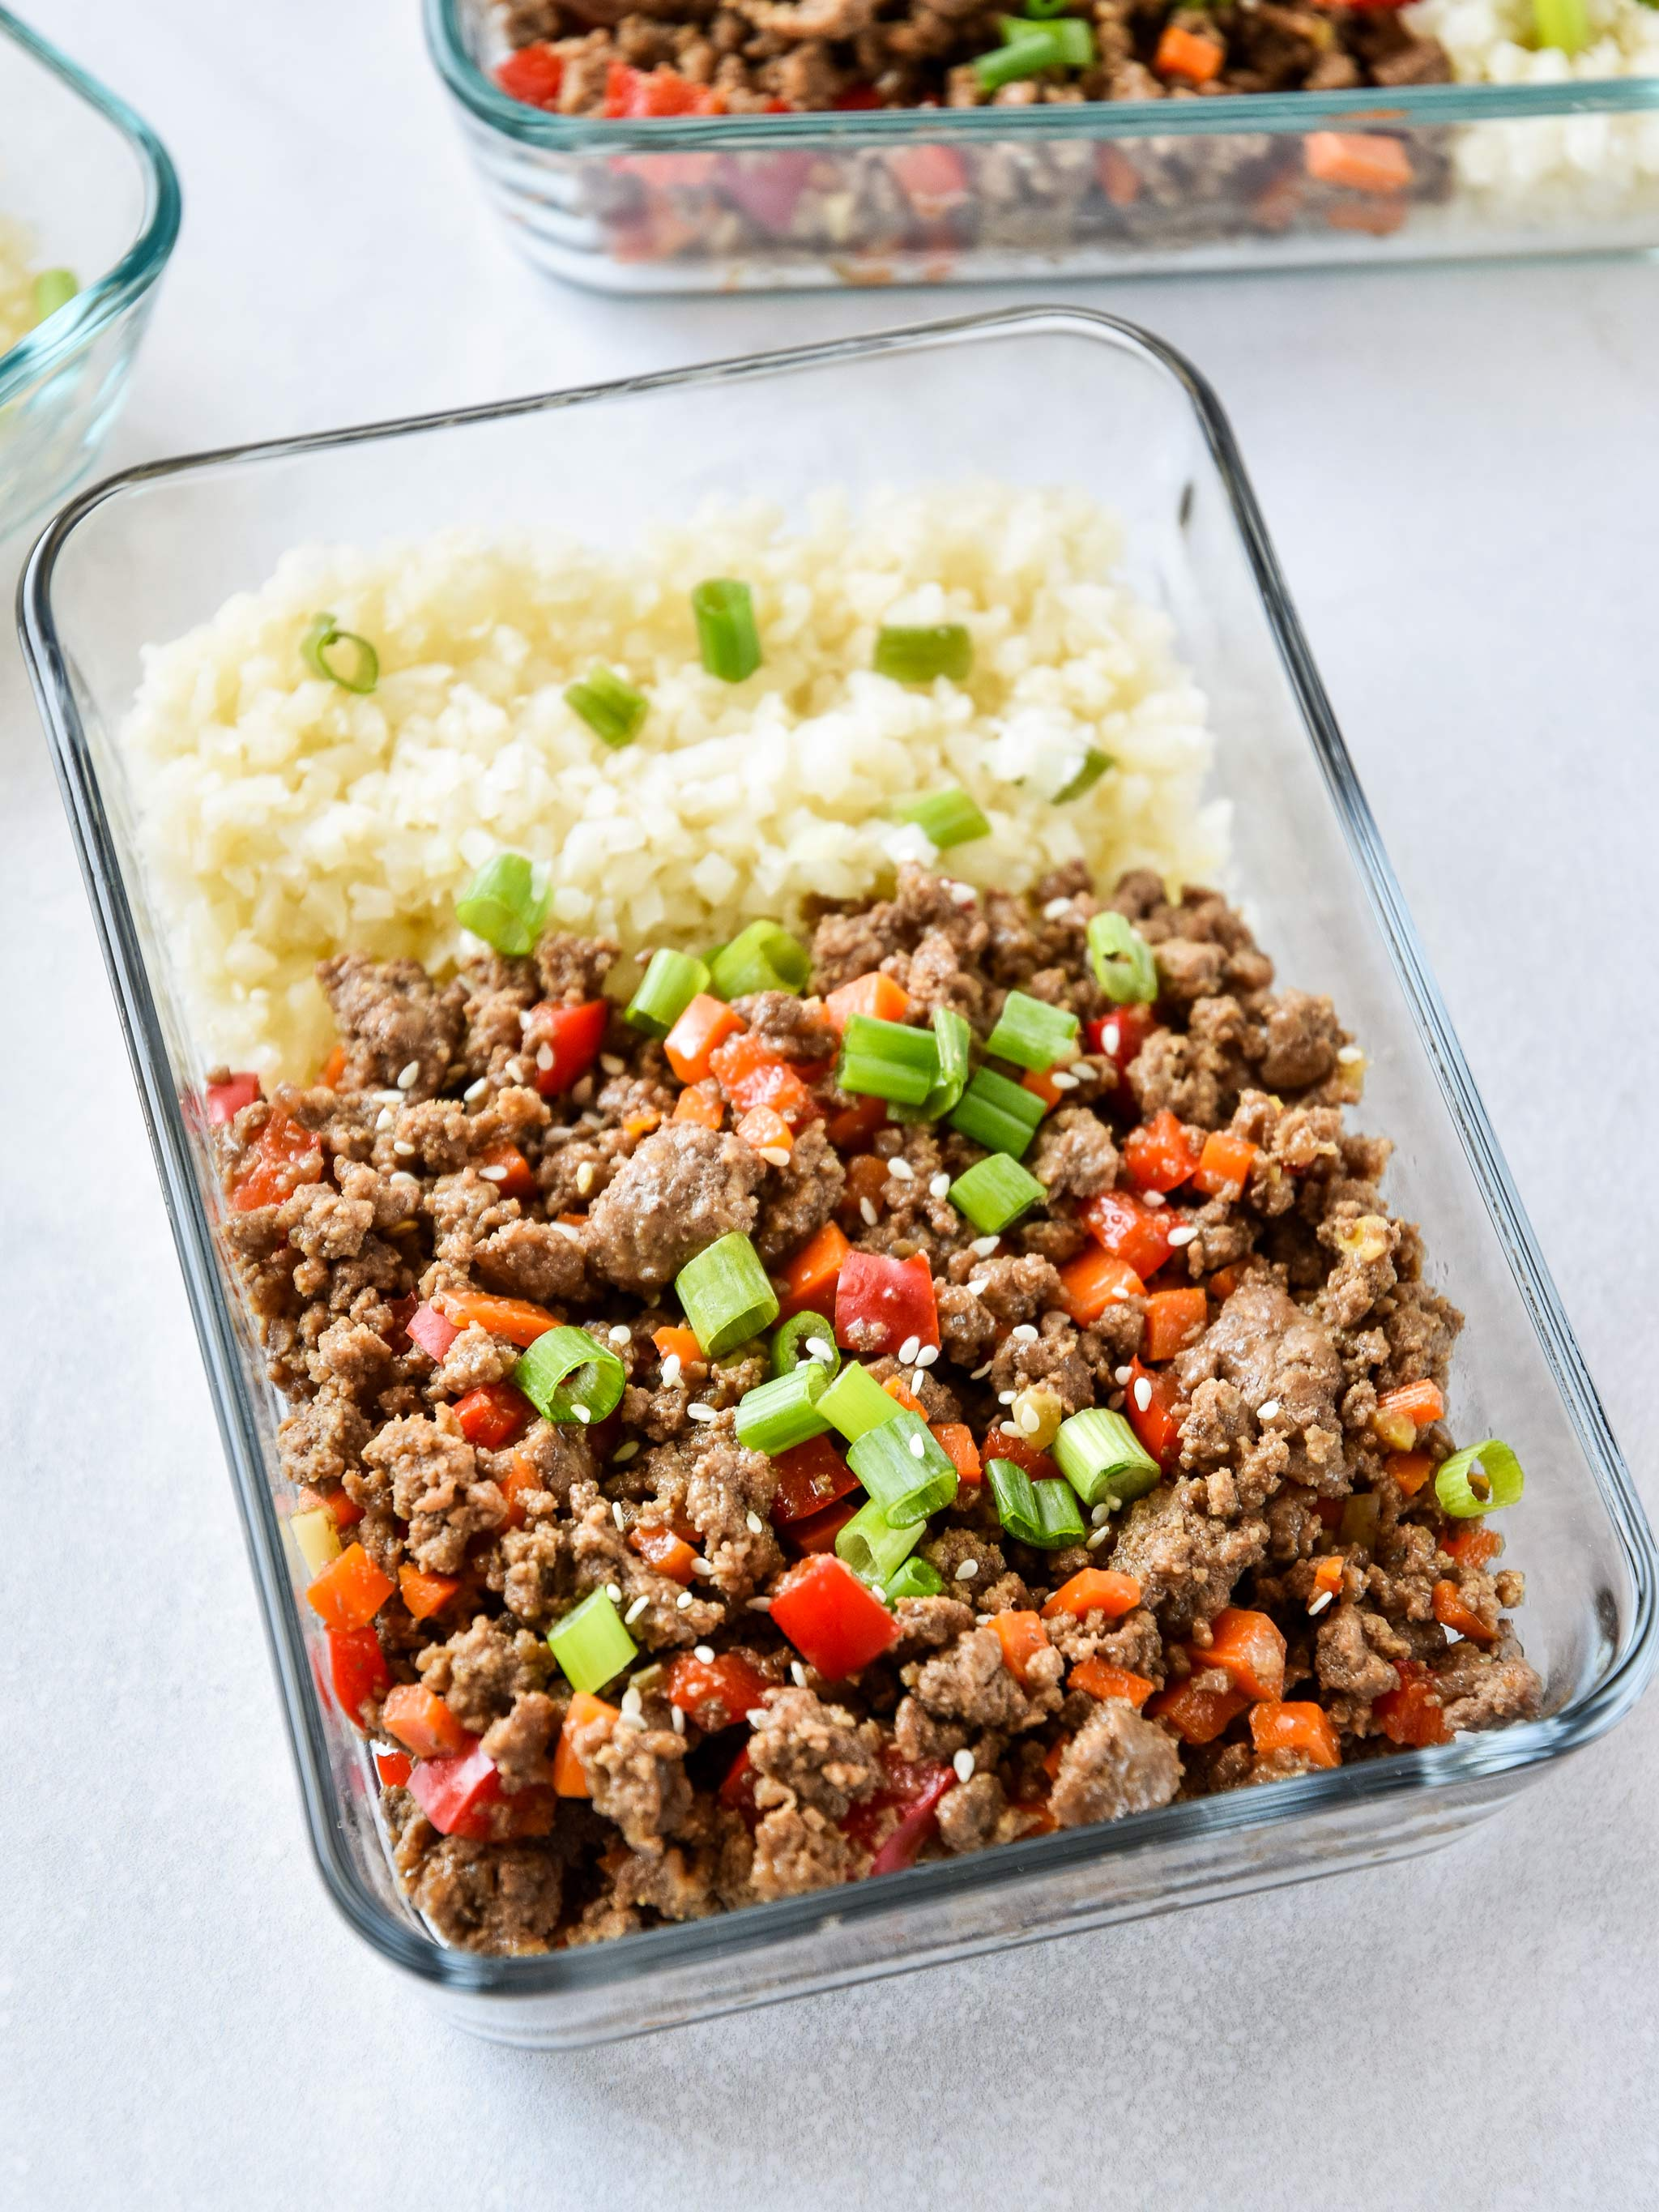 Meal prep Ginger Ground Beef Bowls Whole30 and paleo in a pyrex meal prep container